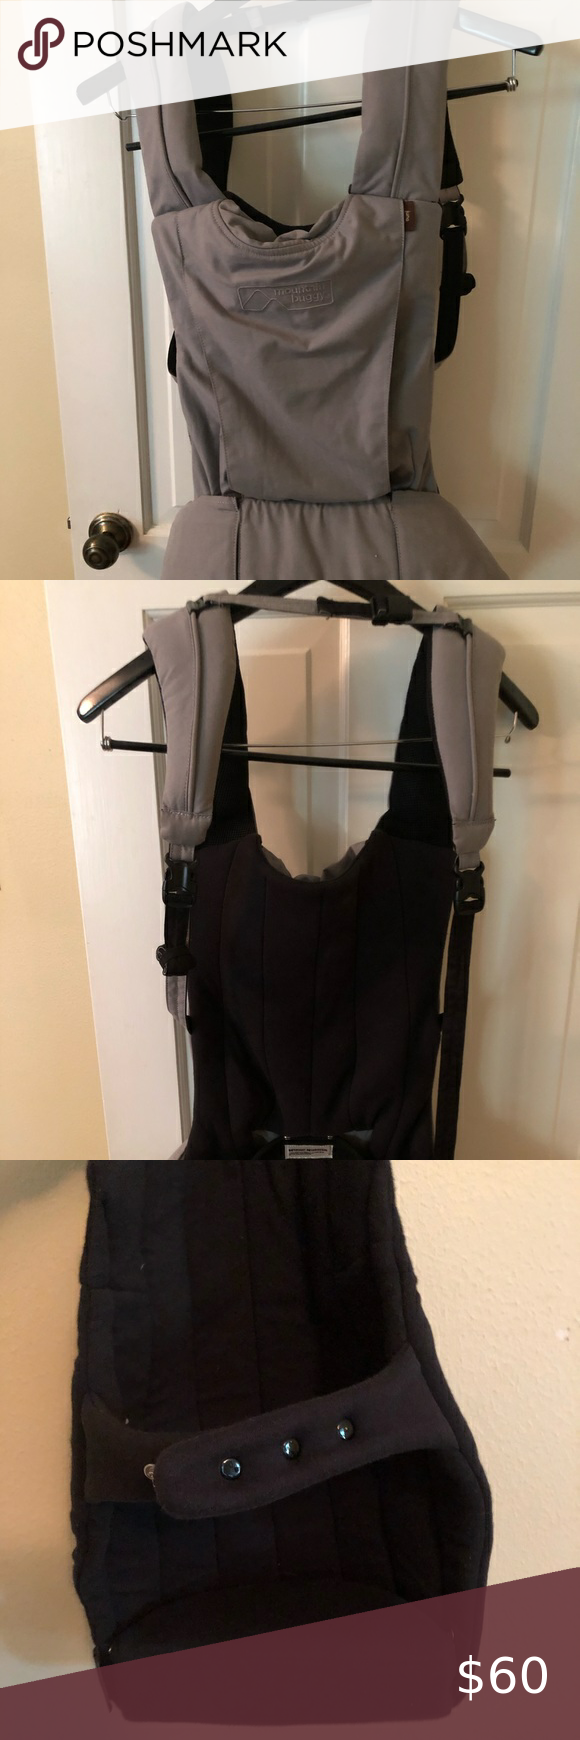 Baby Carrier Mountain Buggy Juno Charcoal Baby Carrier Mountain Buggy Buggy